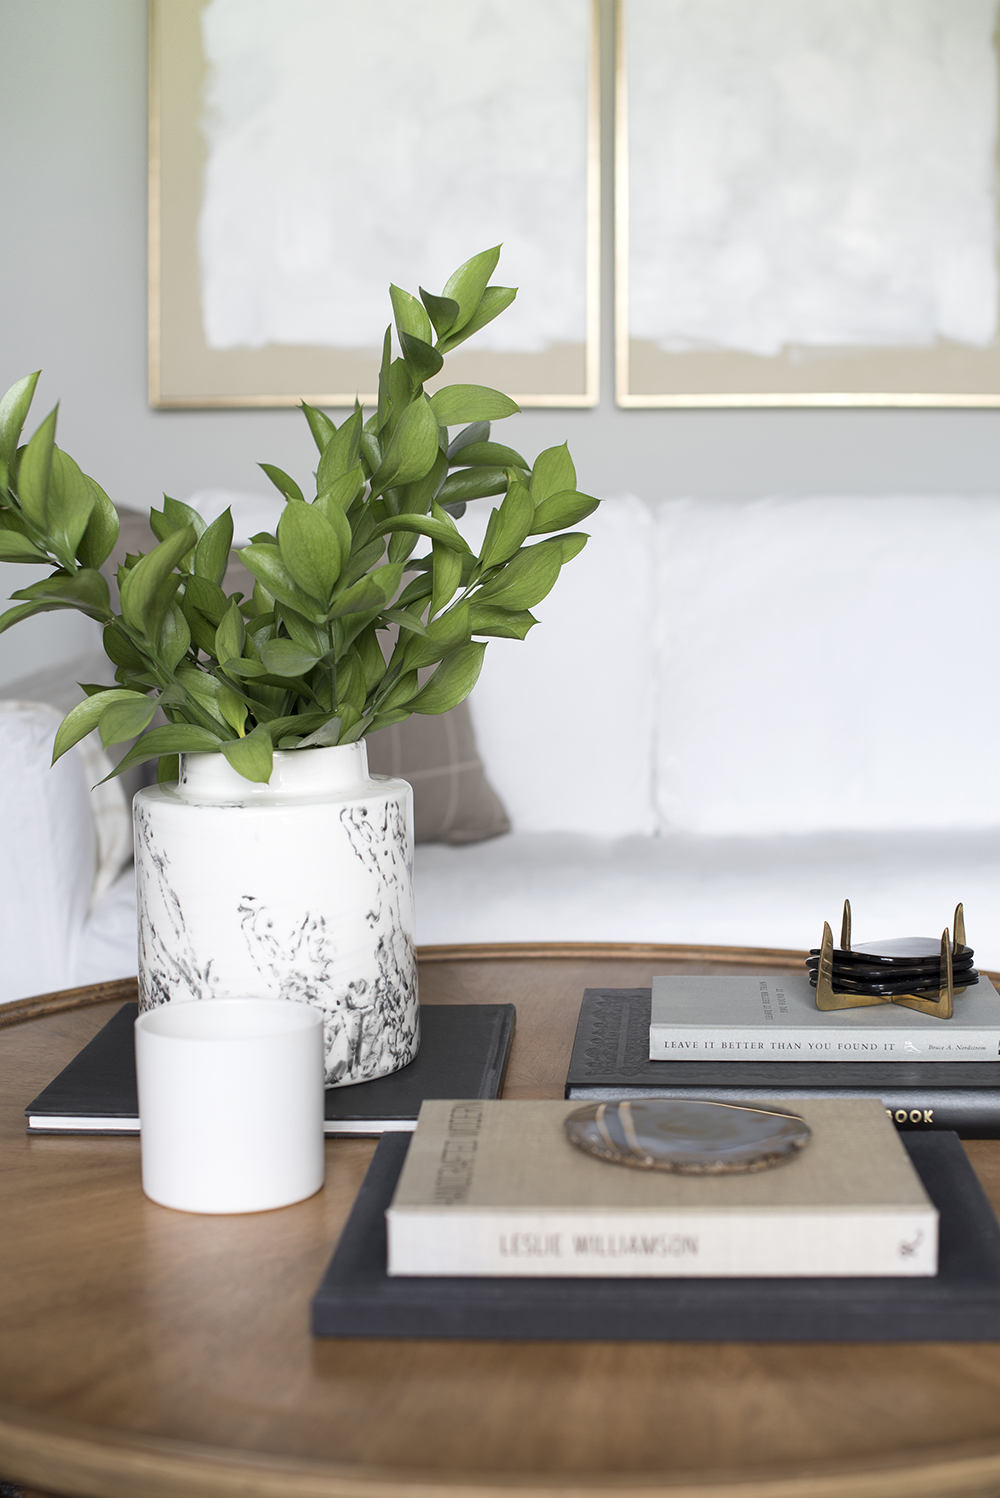 Amazon Finds : Vases - roomfortuesday.com